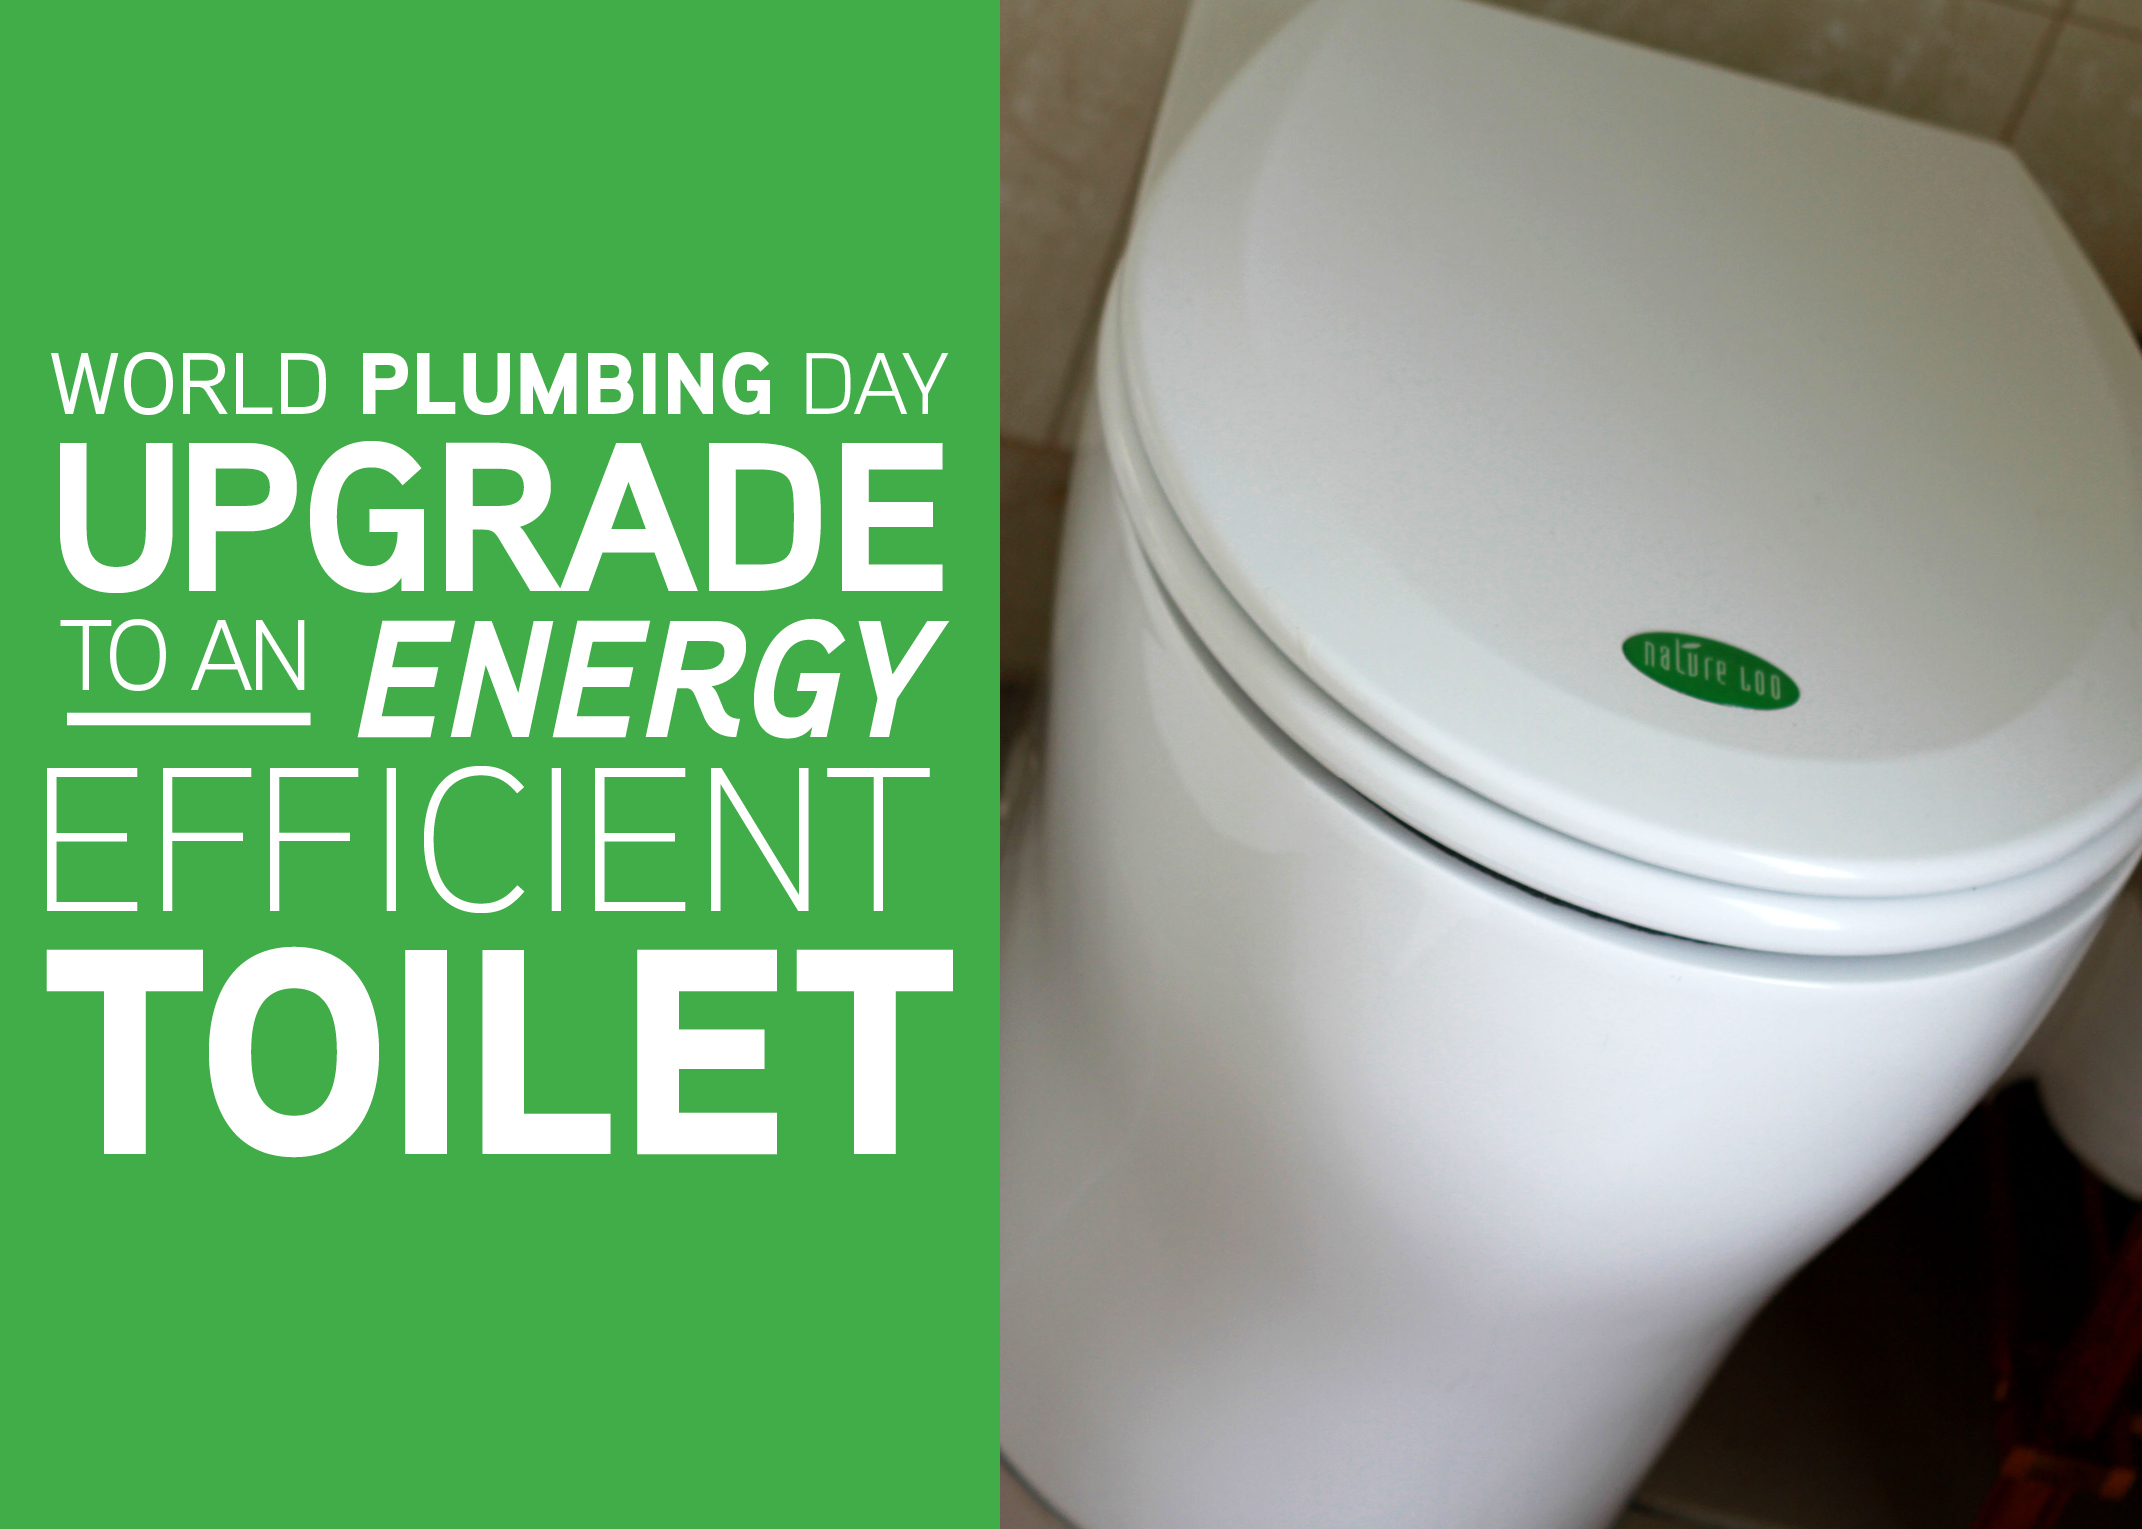 World Plumbing Day Upgrade To An Energy Efficient Toilet